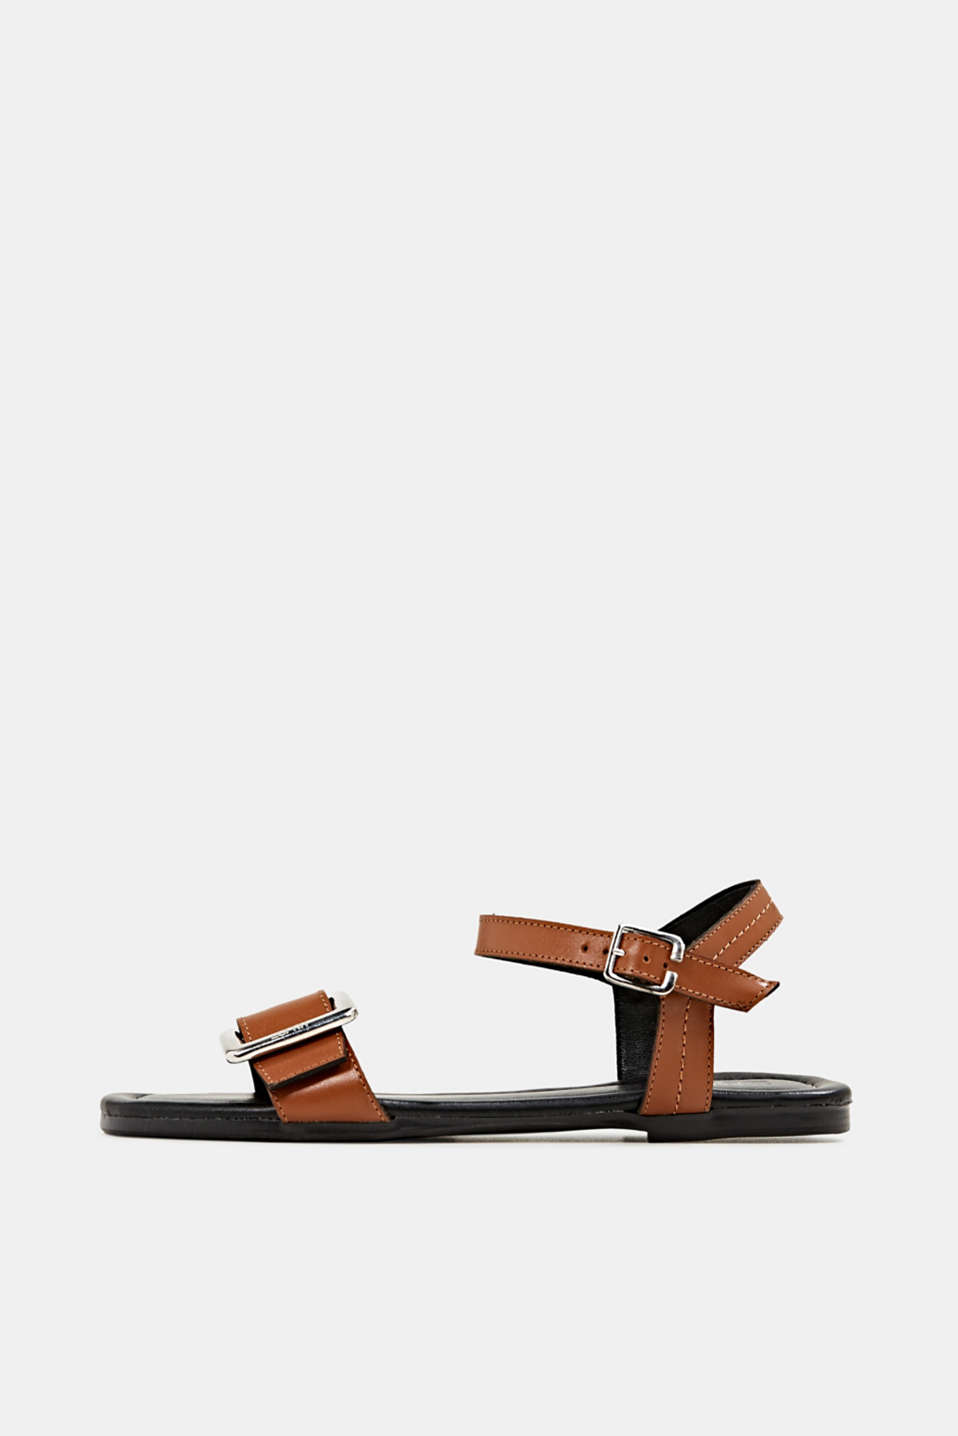 Esprit - Made of leather: sandals with a metal buckle